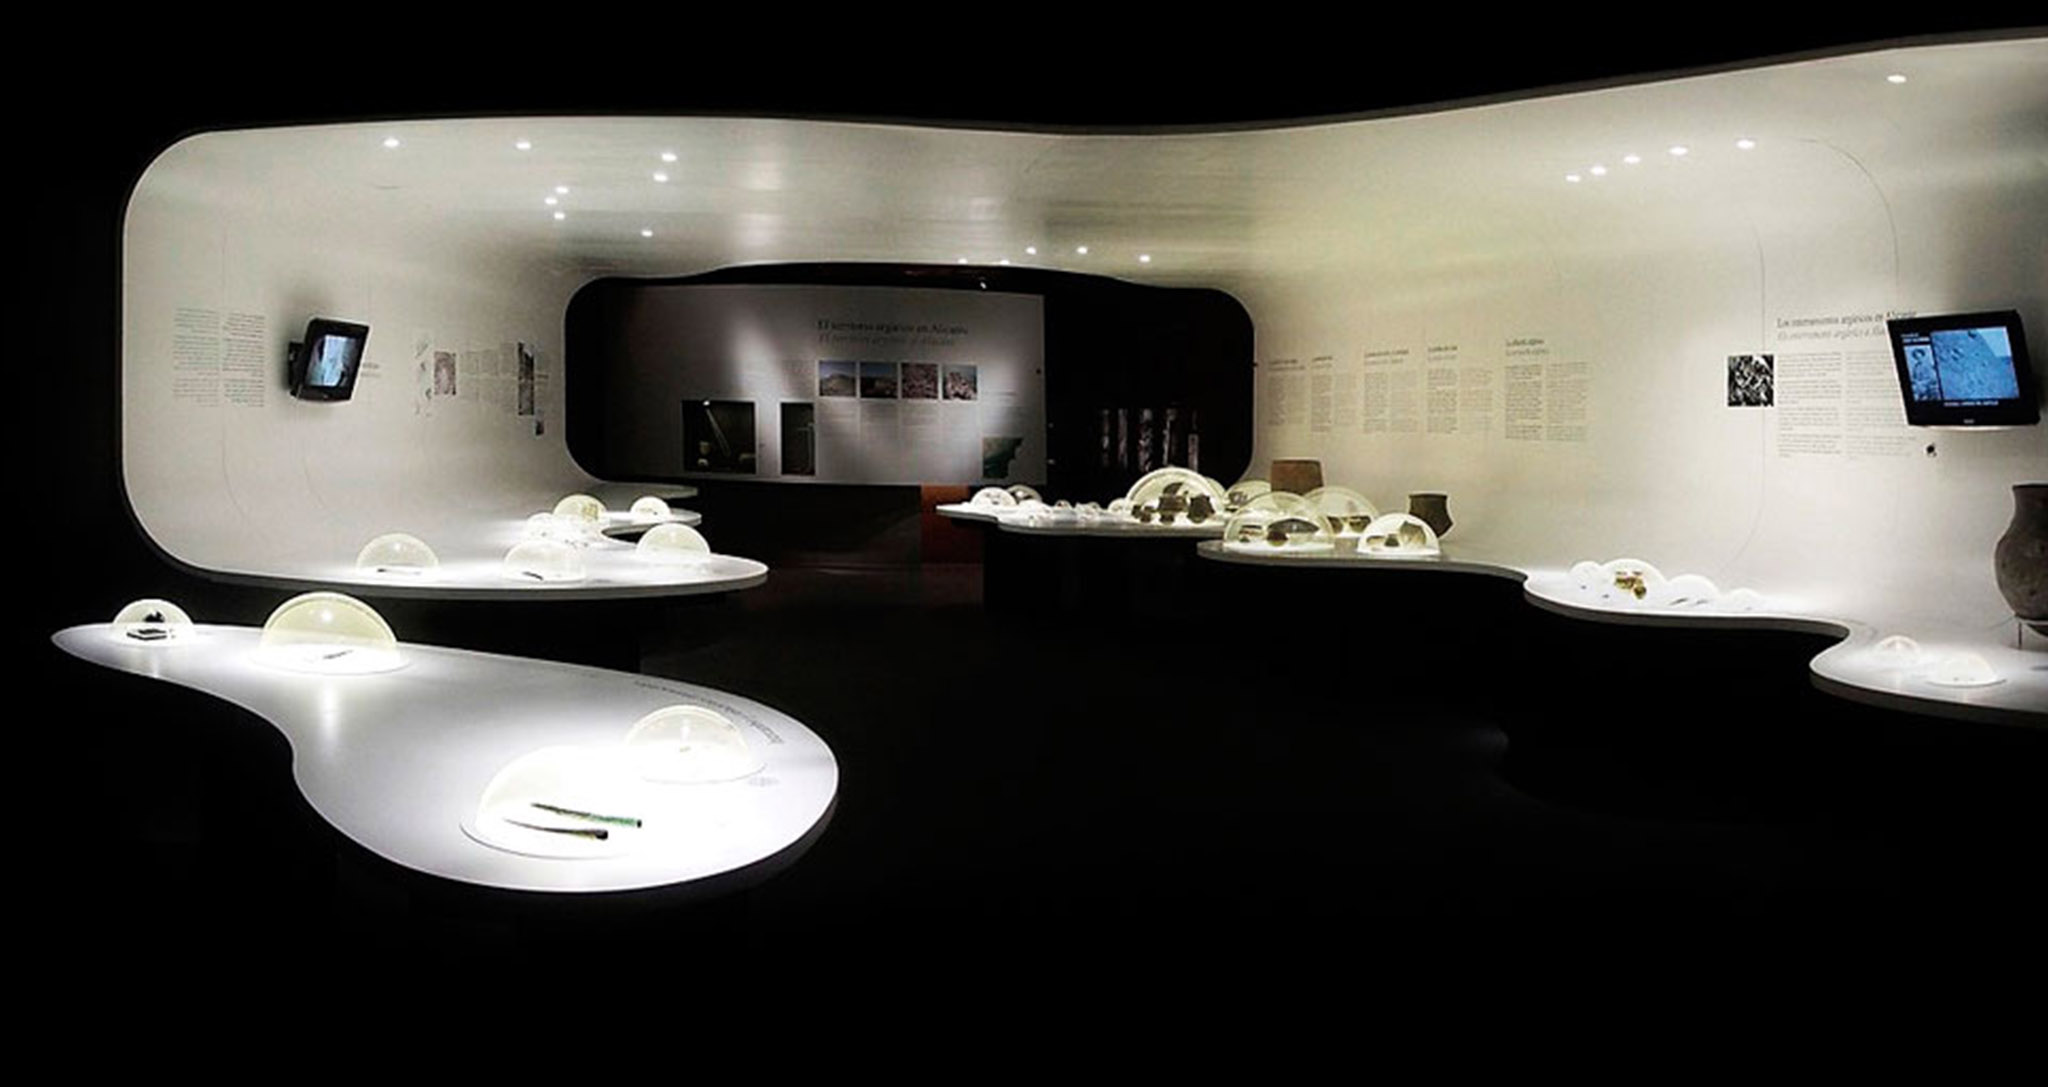 ARCHITECTURE TEMPORARY EXHIBITION AND MUSEOGRAPHY TEMPORARY THE CONFINES OF ARGAR IN MARQ BY ROCAMORA DESIGN ELCHE ALICANTE SPAIN